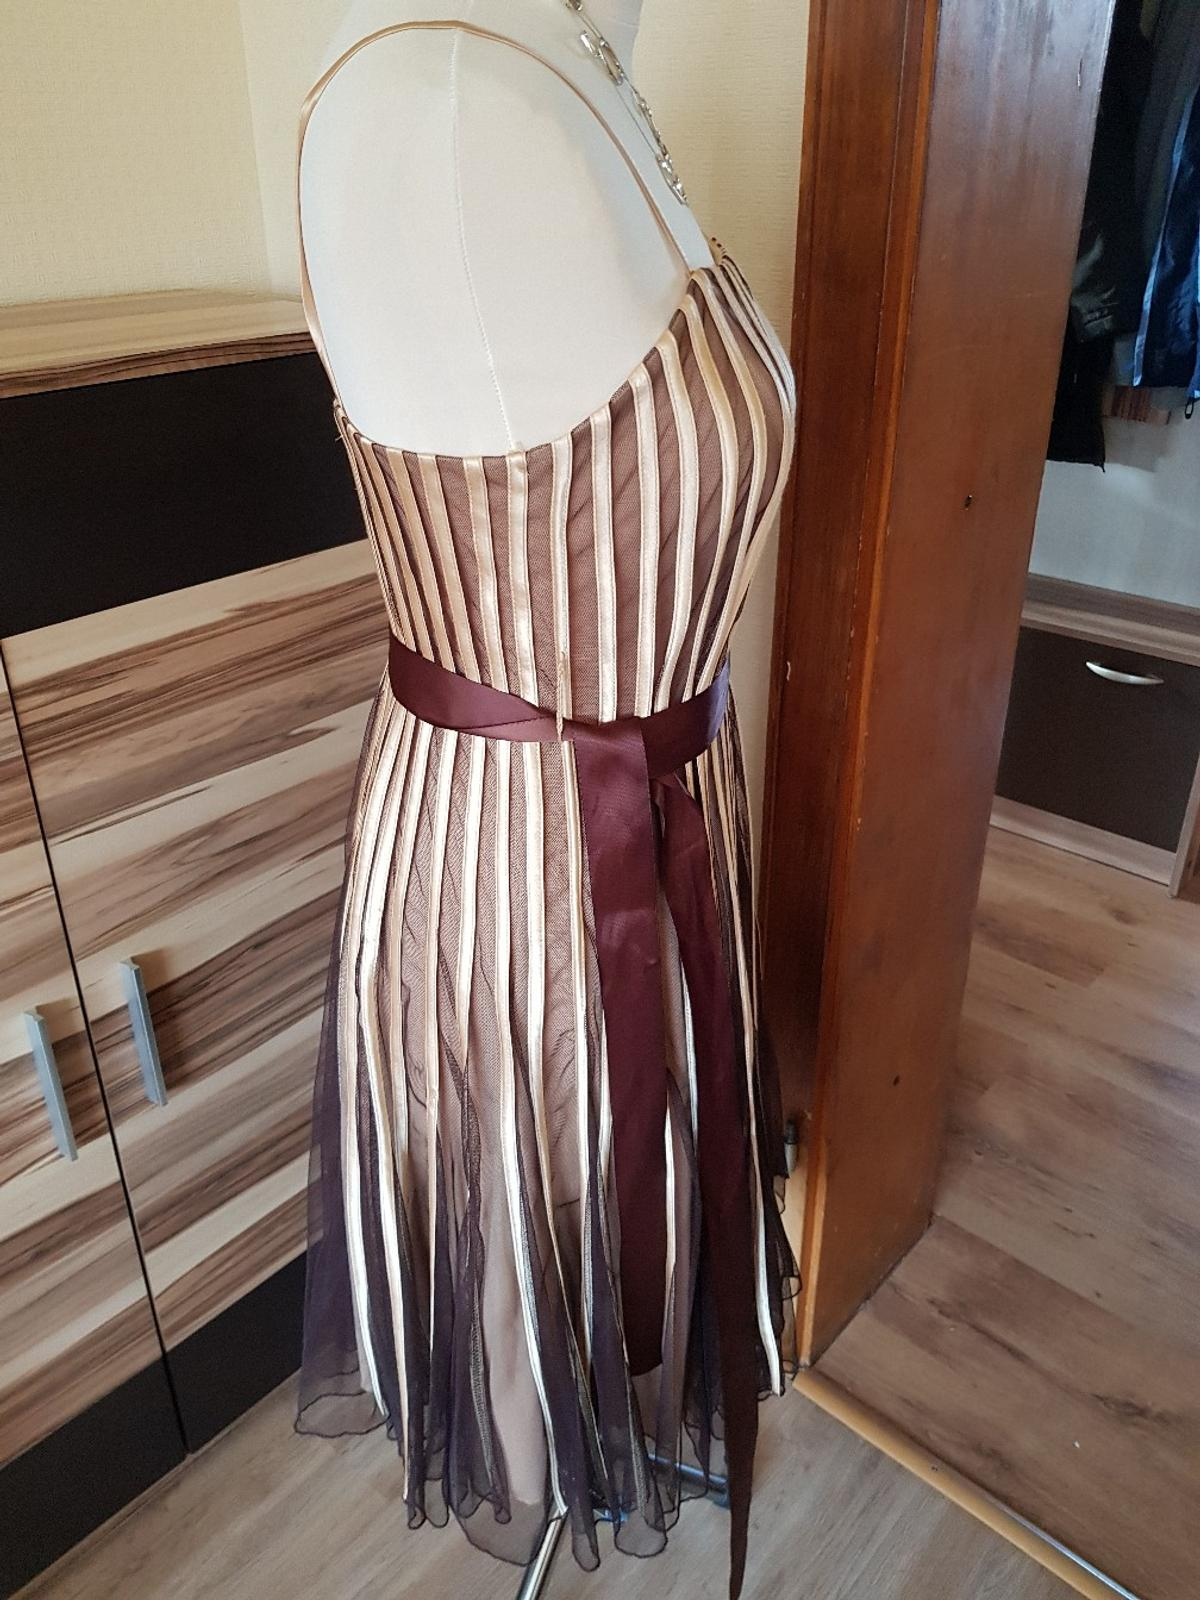 Anny Lee Festliches Kleid In Beige Gr Xs In 59075 Hamm For 30 00 For Sale Shpock